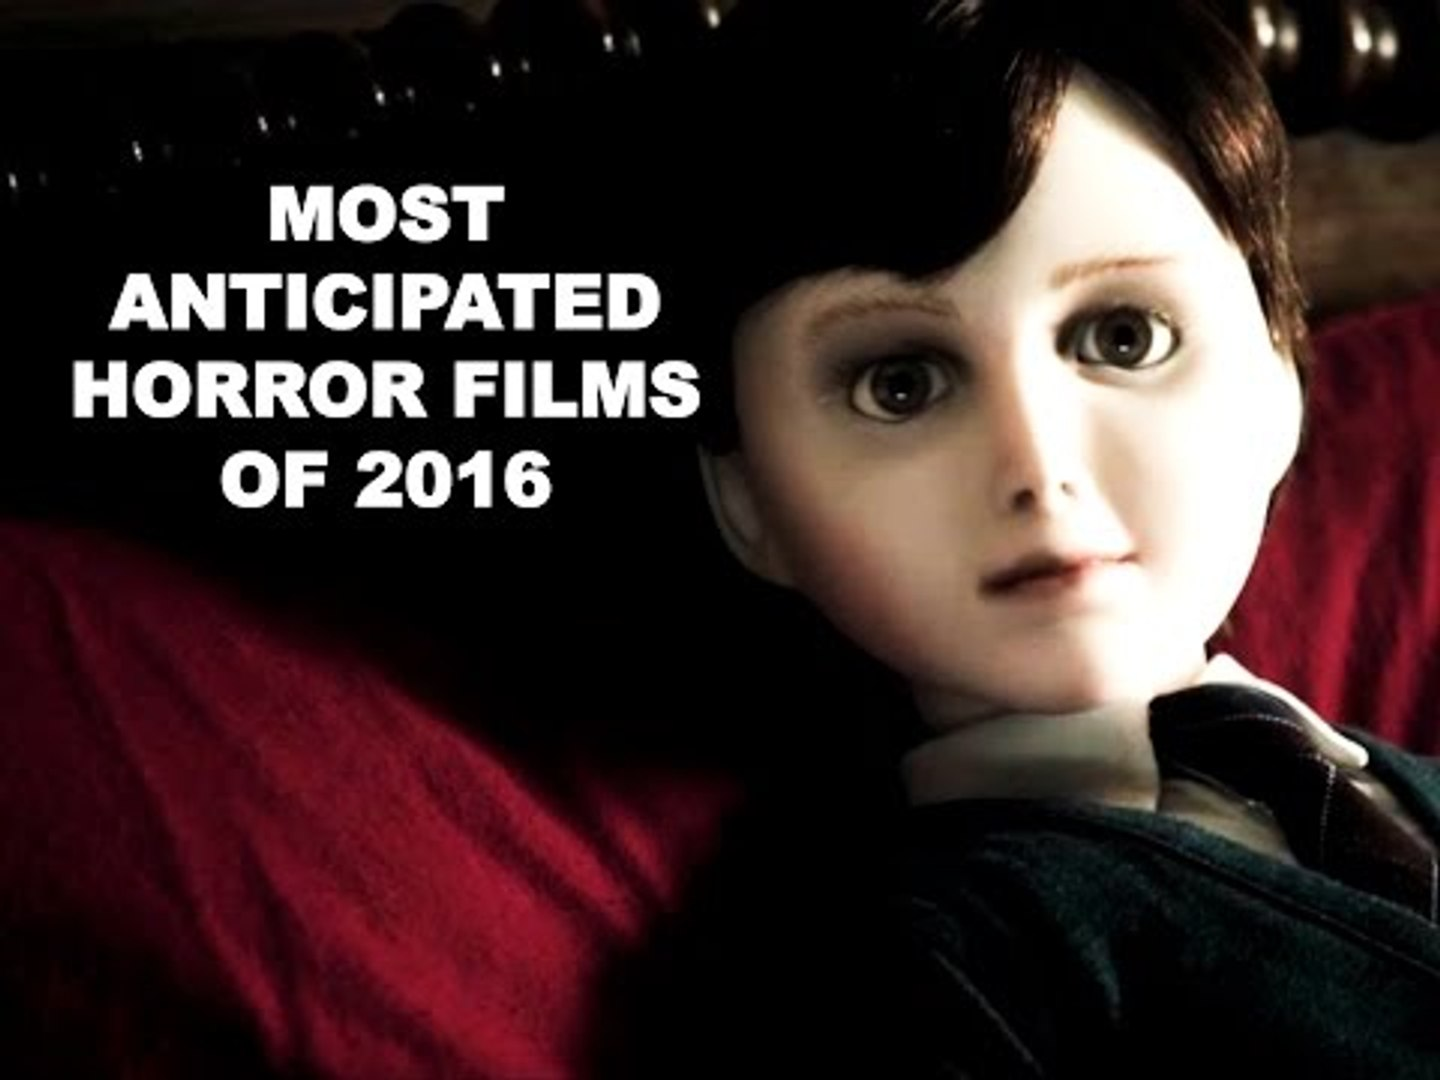 Most Anticipated Horror Films Of 2016   Top 10 Horror Films Of 2016   Hollywood Horror 2016